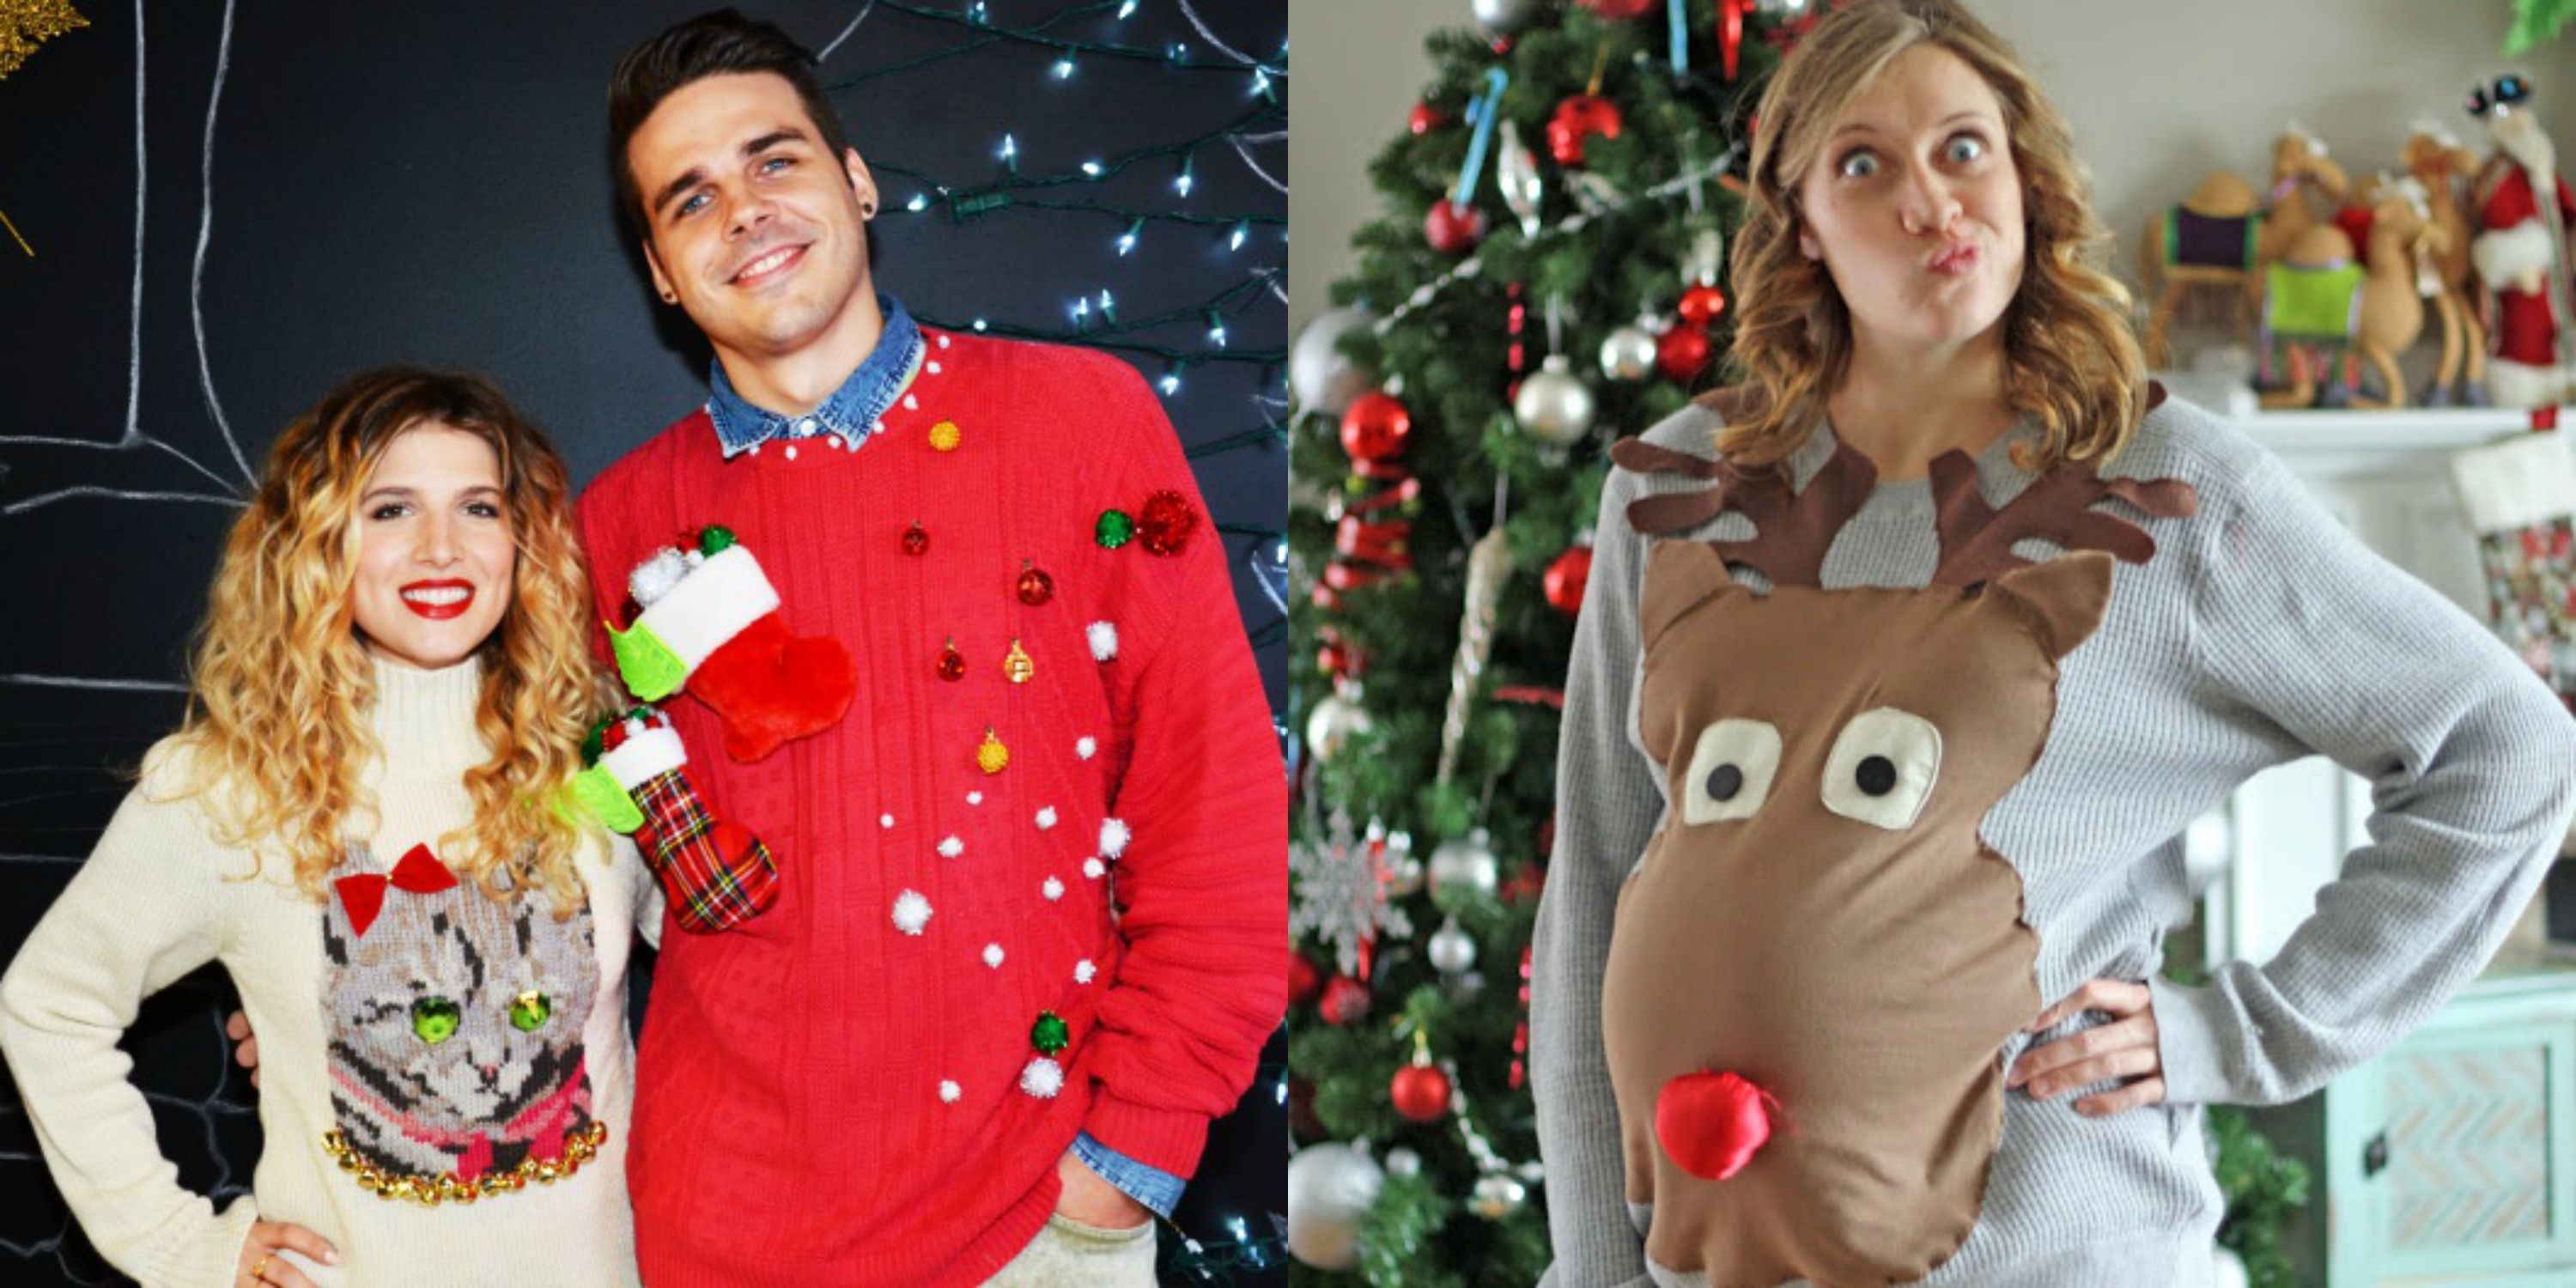 17 ugly christmas sweaters to buy or diy - Homemade Tacky Christmas Sweaters